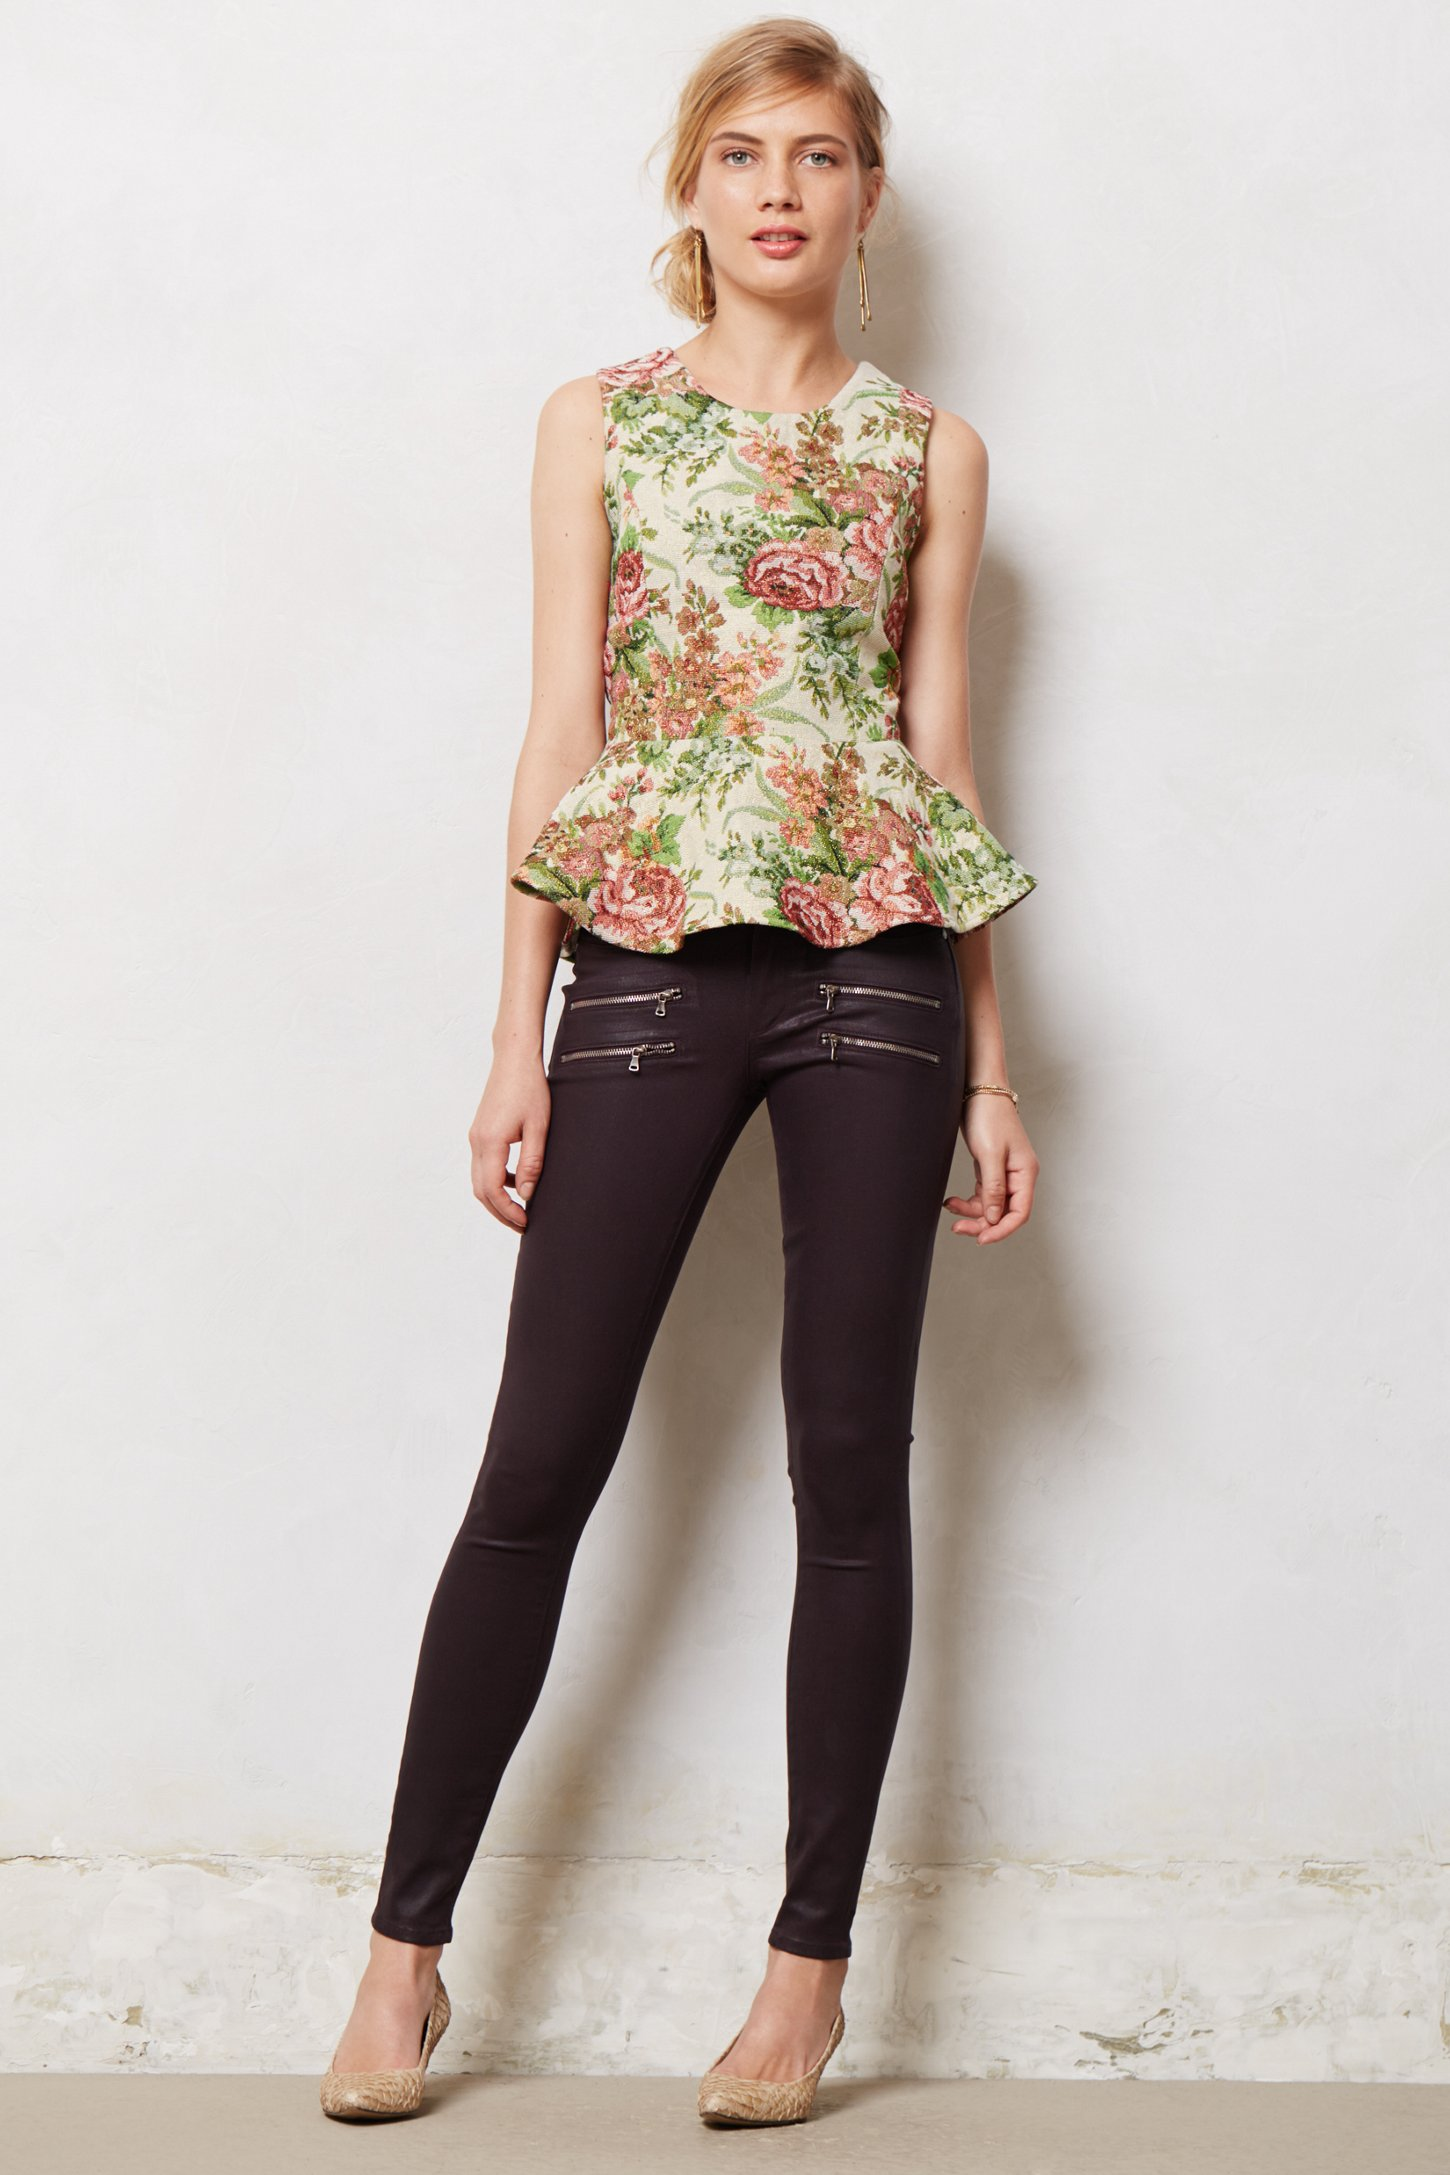 Lyst paige edgemont ultra skinny jeans in black for The edgemont